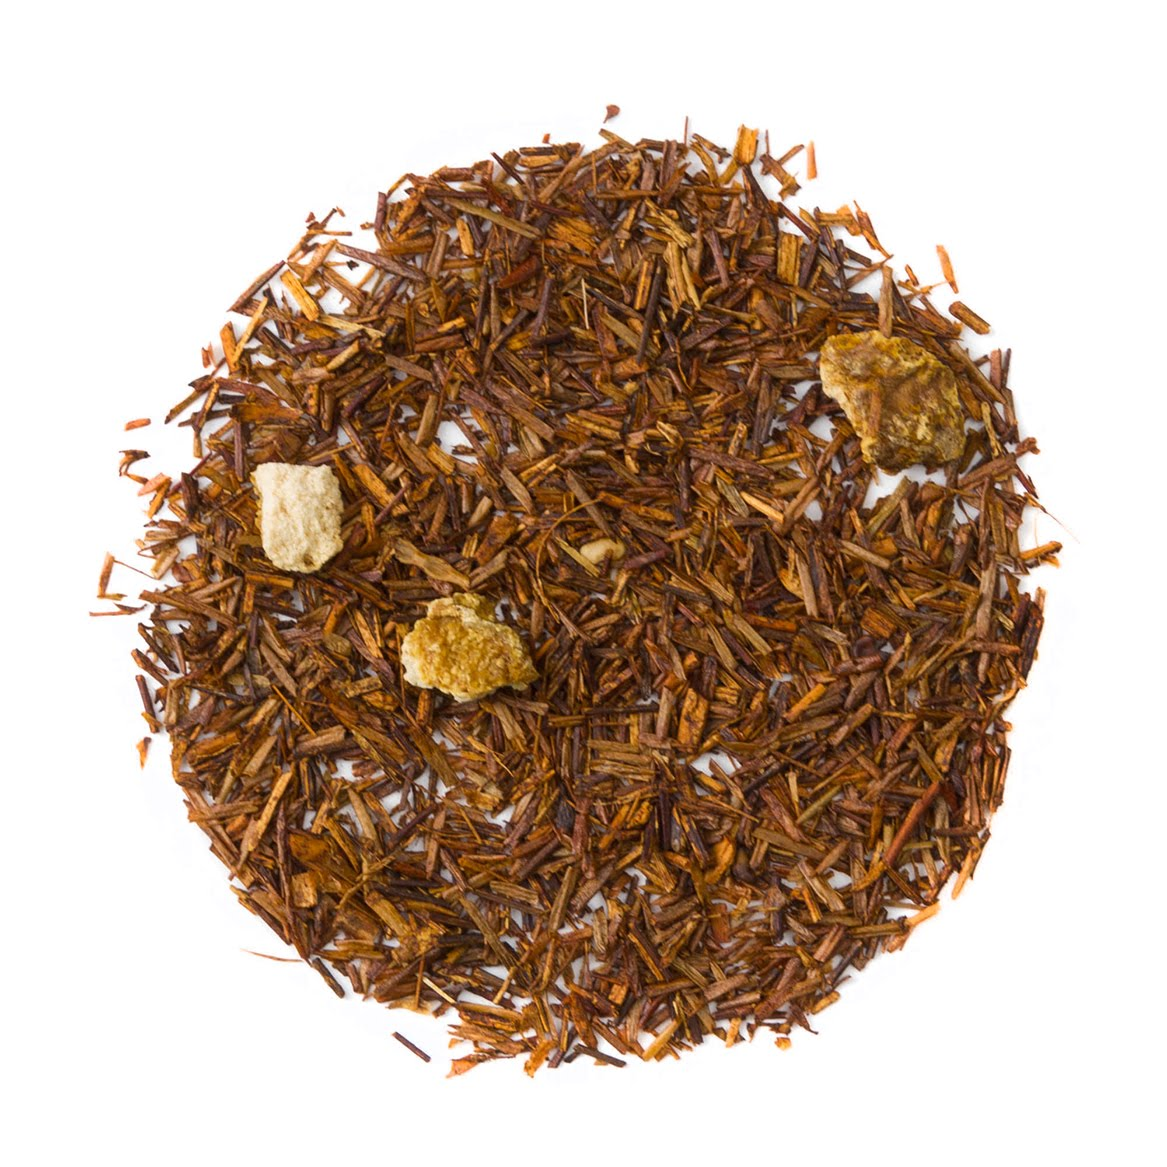 Loose Leaf Rooibos Tea - Premium Rooibos Herbal Tisane - Naturally Caffeine Free Rooibos Teas - Heavenly Tea Leaves